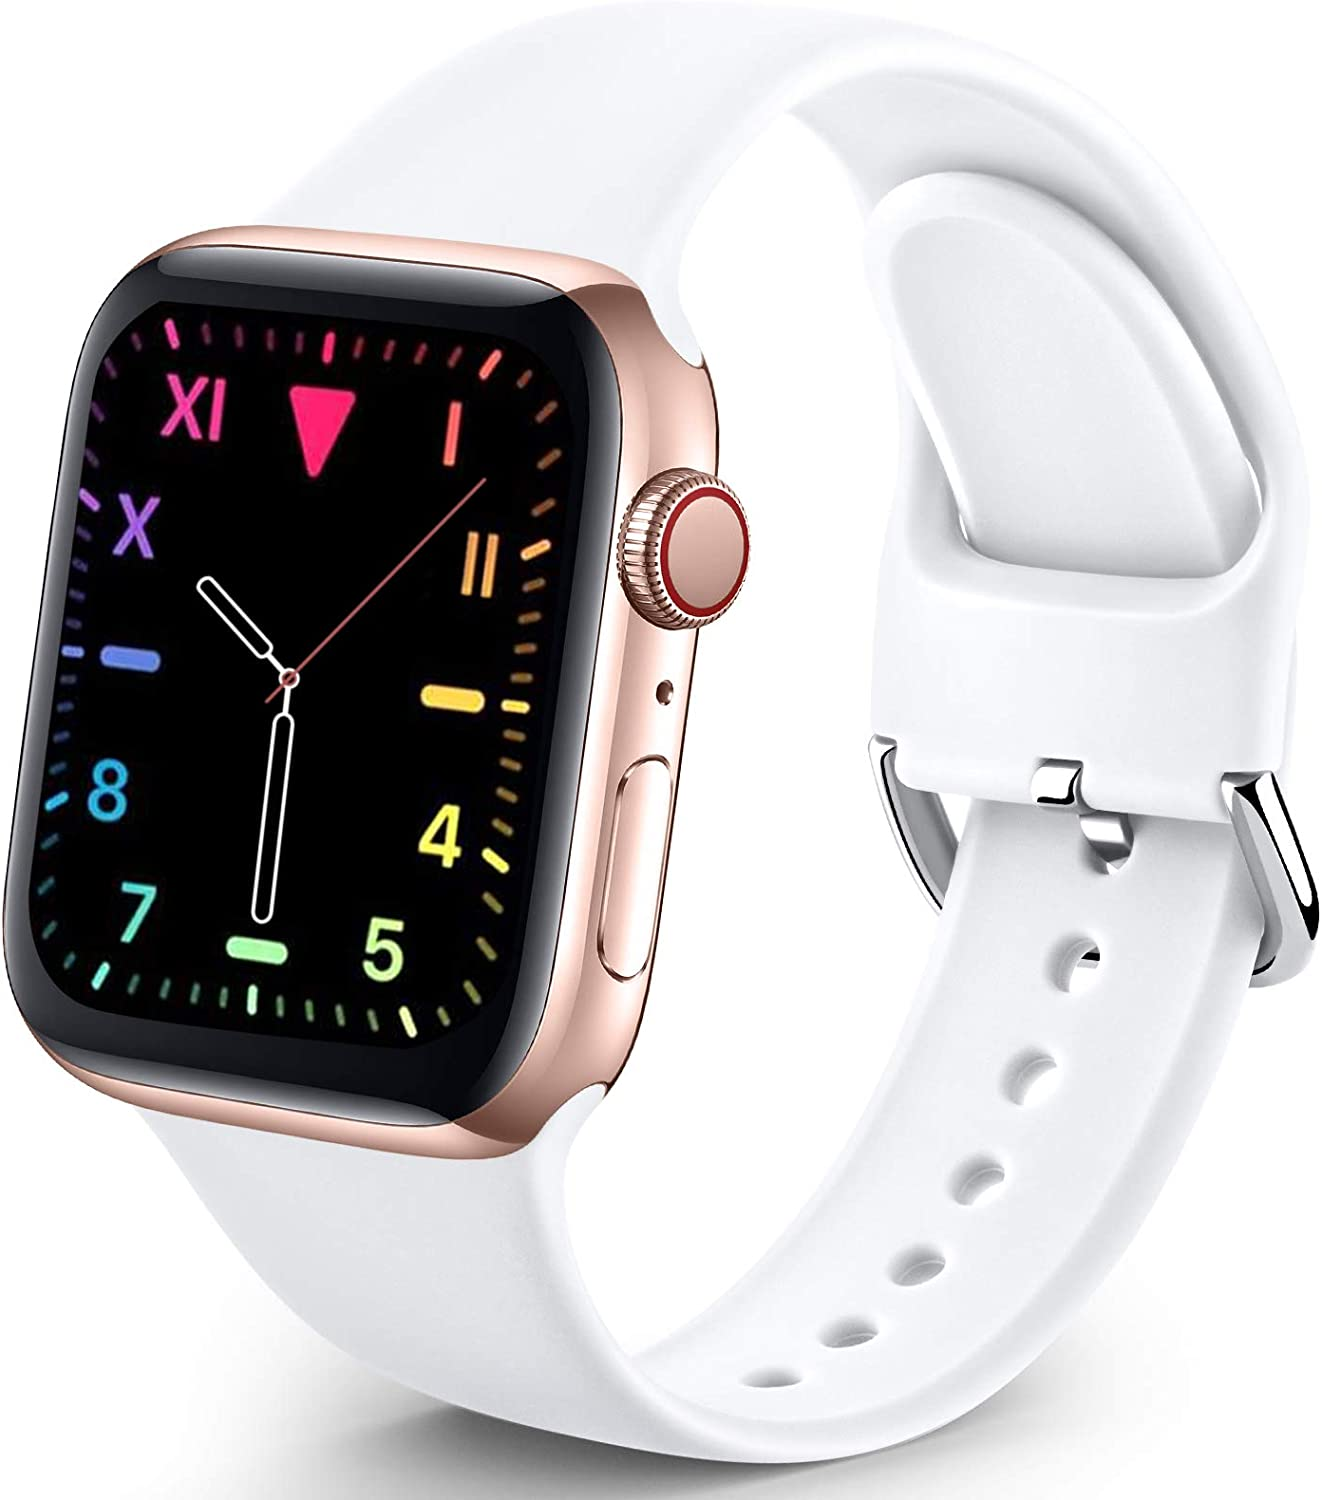 Sport Band Compatible with Apple Watch iWatch Bands 42mm 44mm for Women Men,Soft Silicone Strap Wristbands for Apple Watch Series 3 Series 6 Series 5 Series 4 Series 2 Series 1 Series SE,White